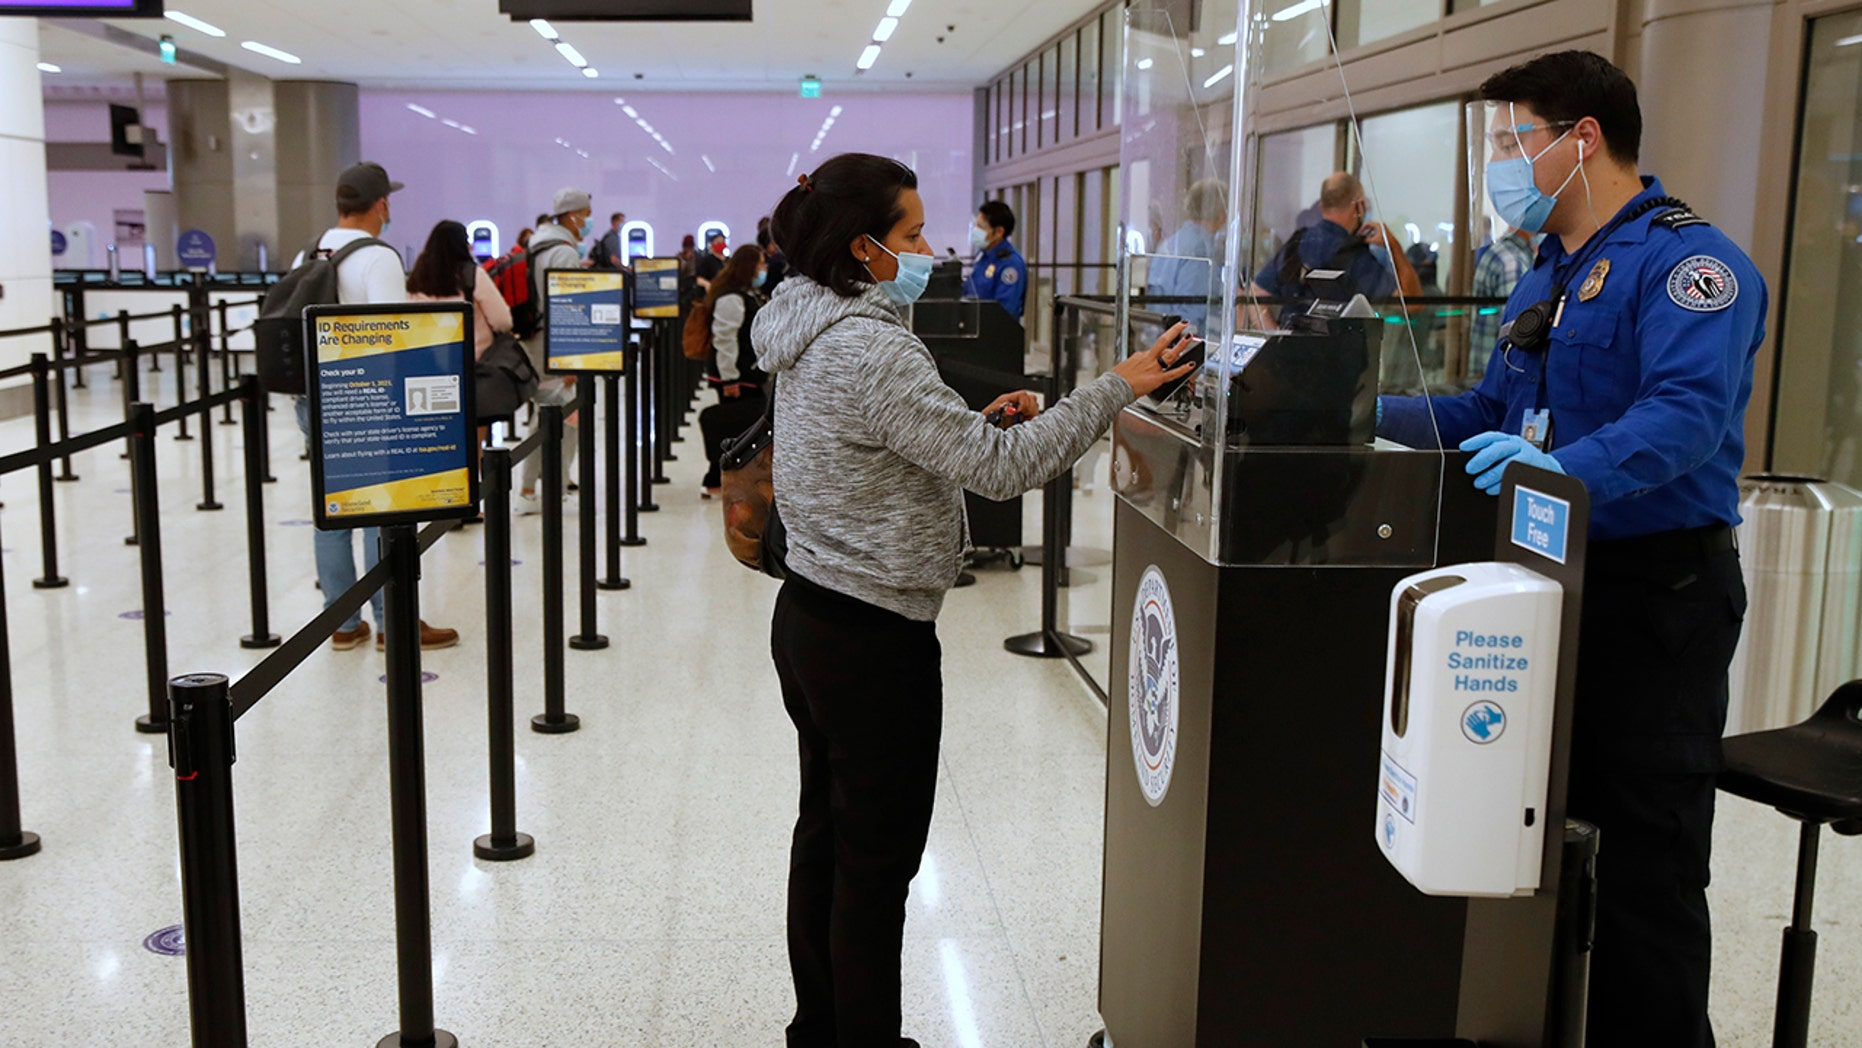 Flying for Thanksgiving? TSA offers safety tips for travel during pandemic